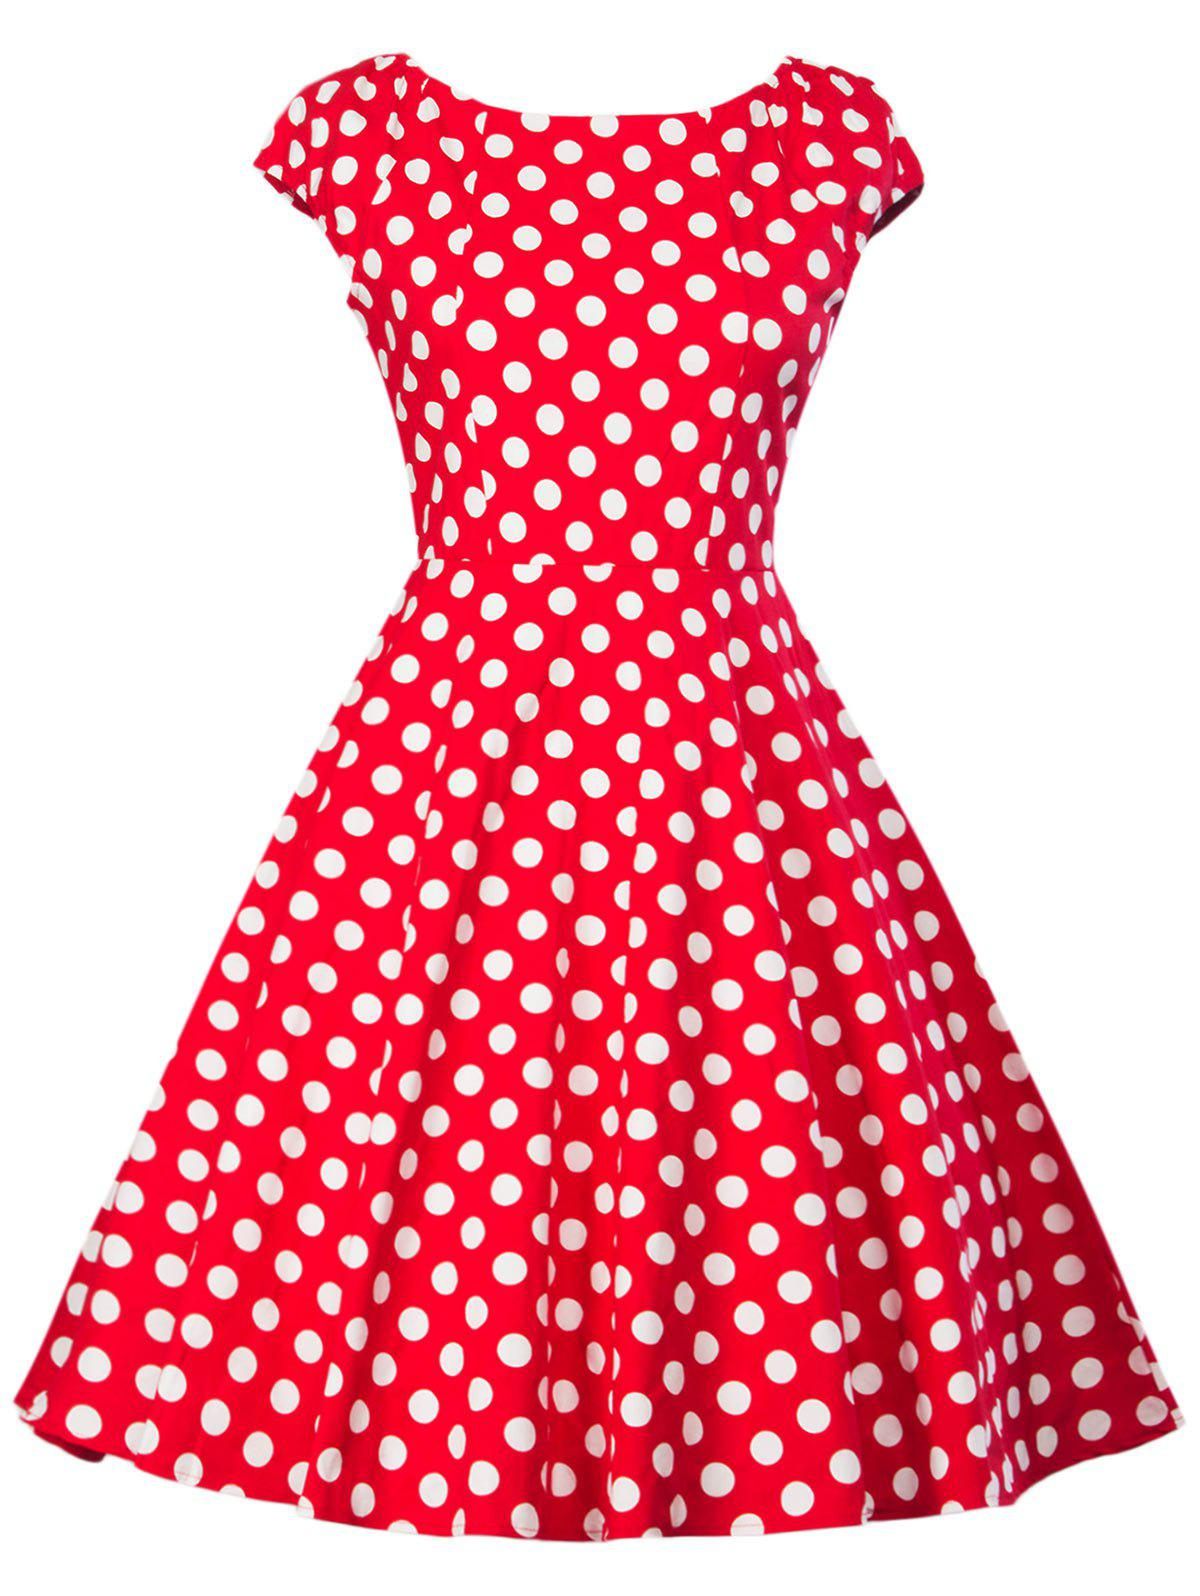 Retro Polka Dot Flare Dress hybrid nested partitions method for wta problem